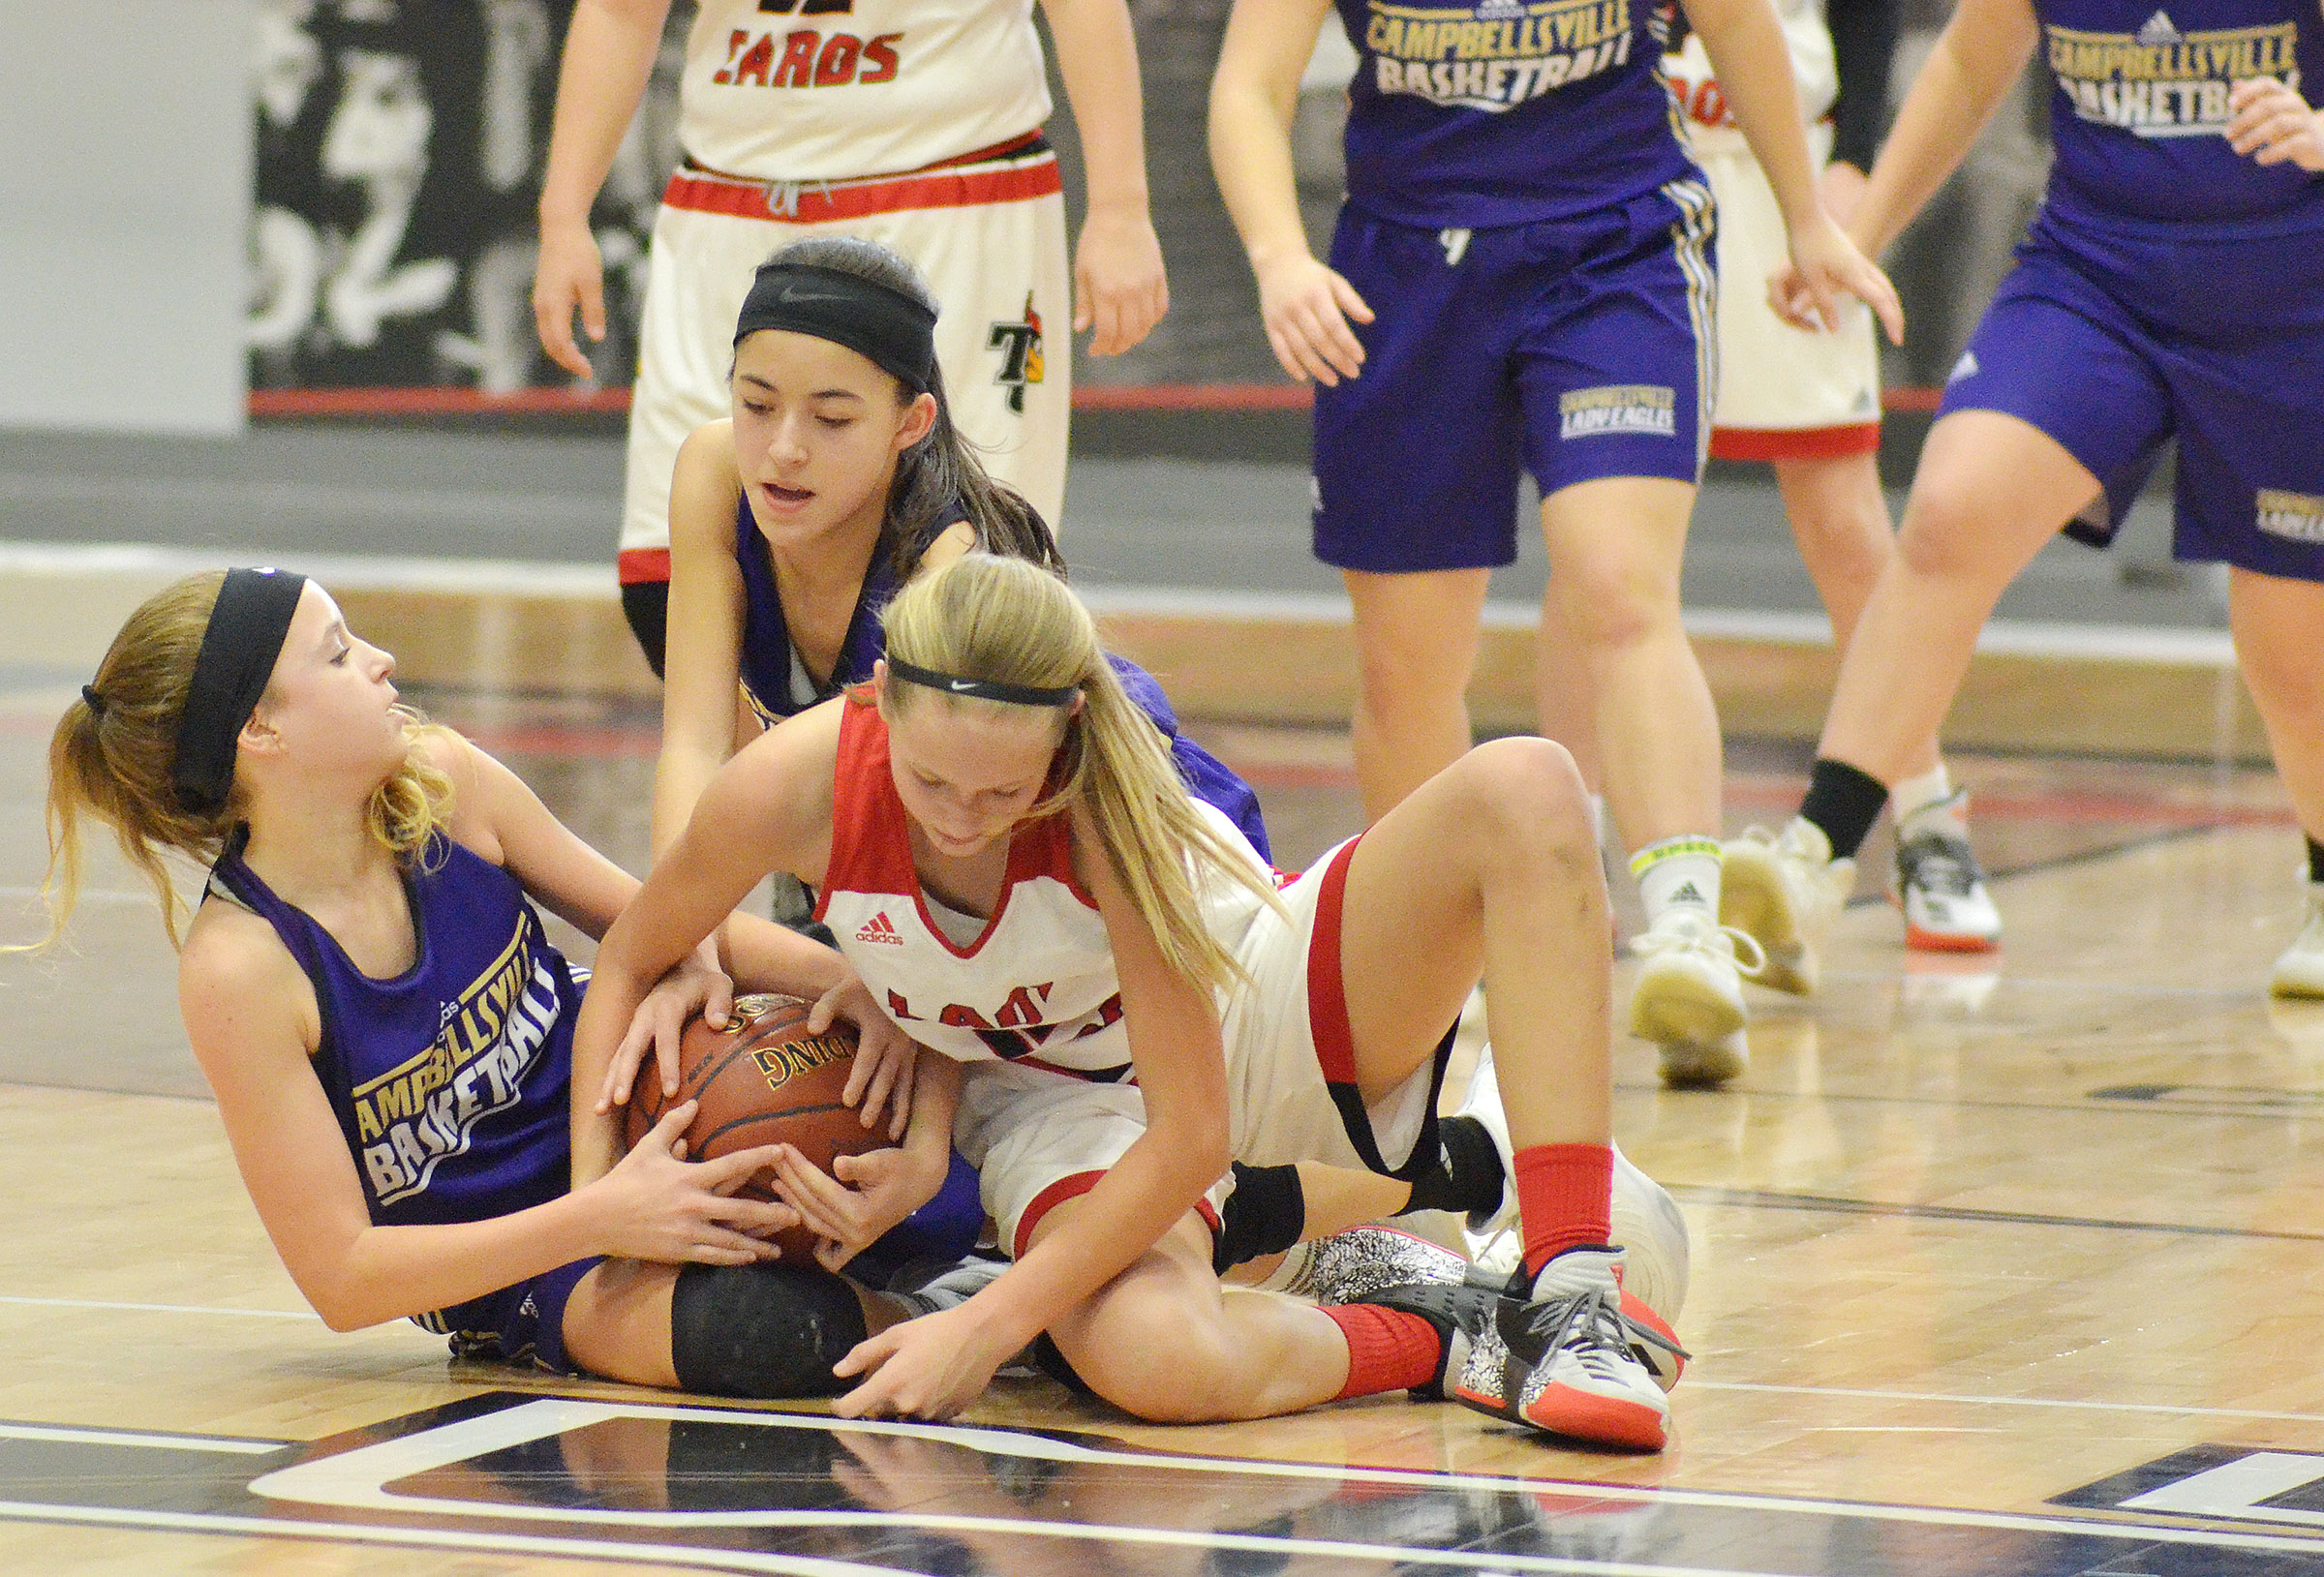 Campbellsville Middle School eighth-graders Rylee Petett, at left, and Kaylyn Smith fight for the ball.